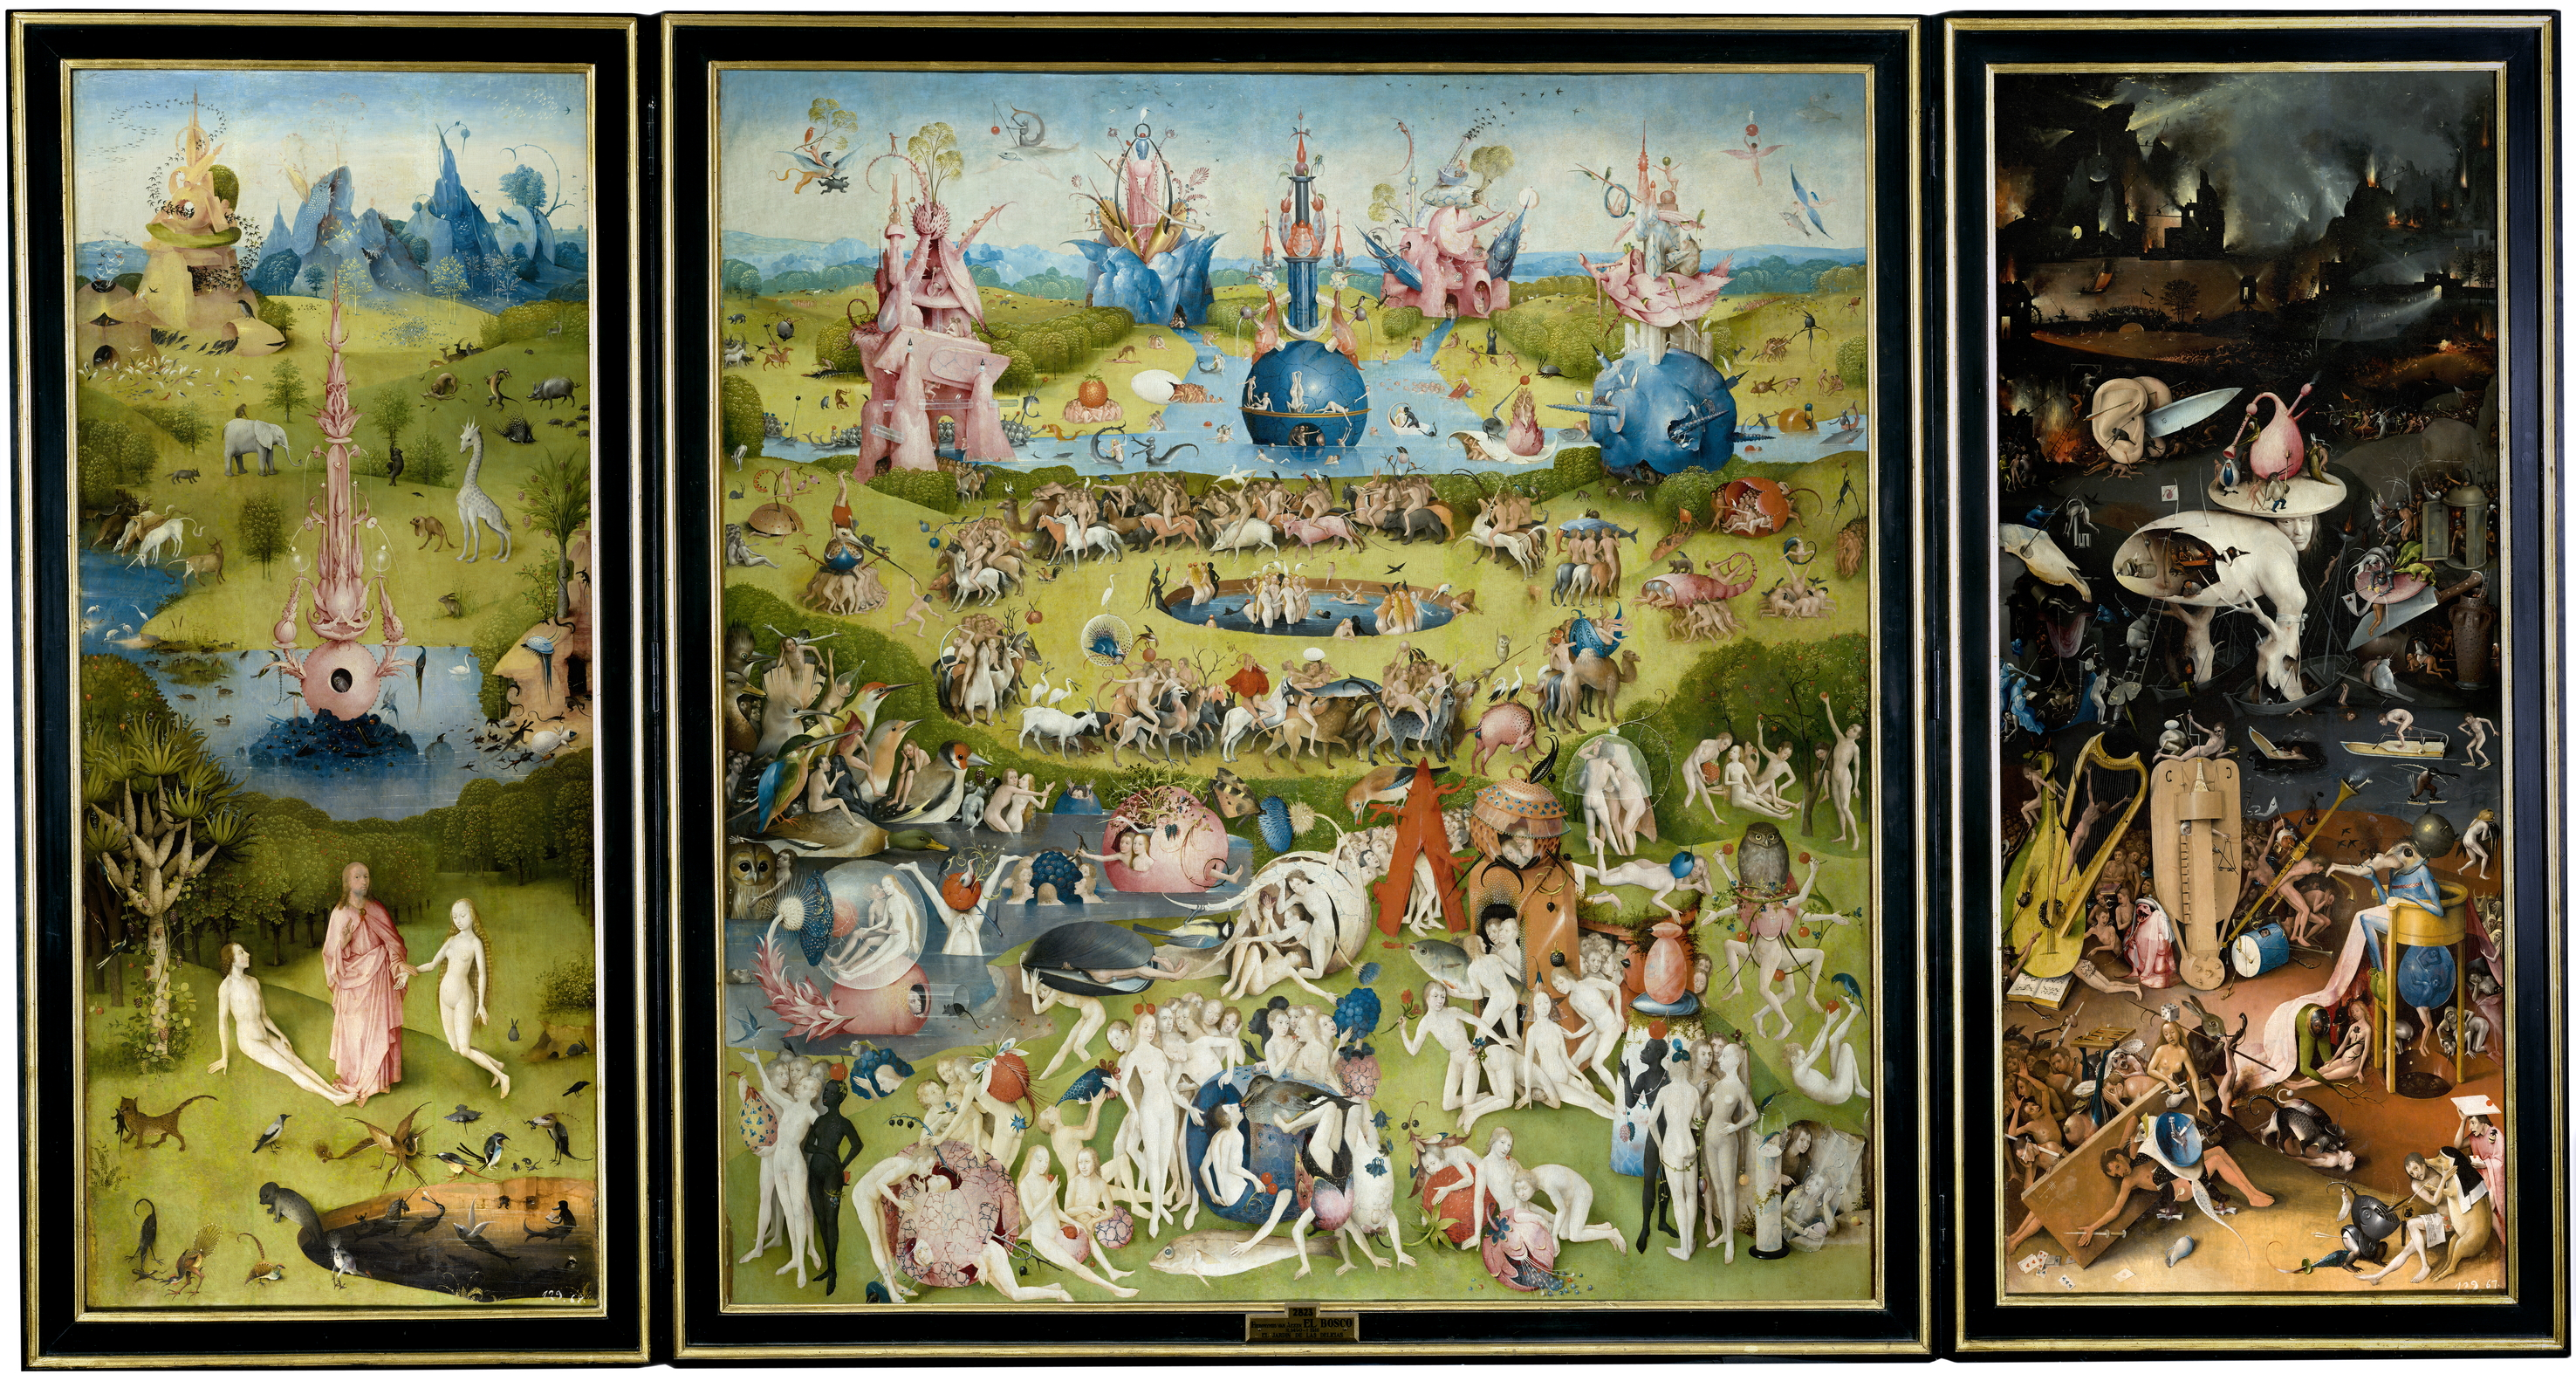 Multimediality of Hieronymous Bosch's Garden of Earthly pleasures